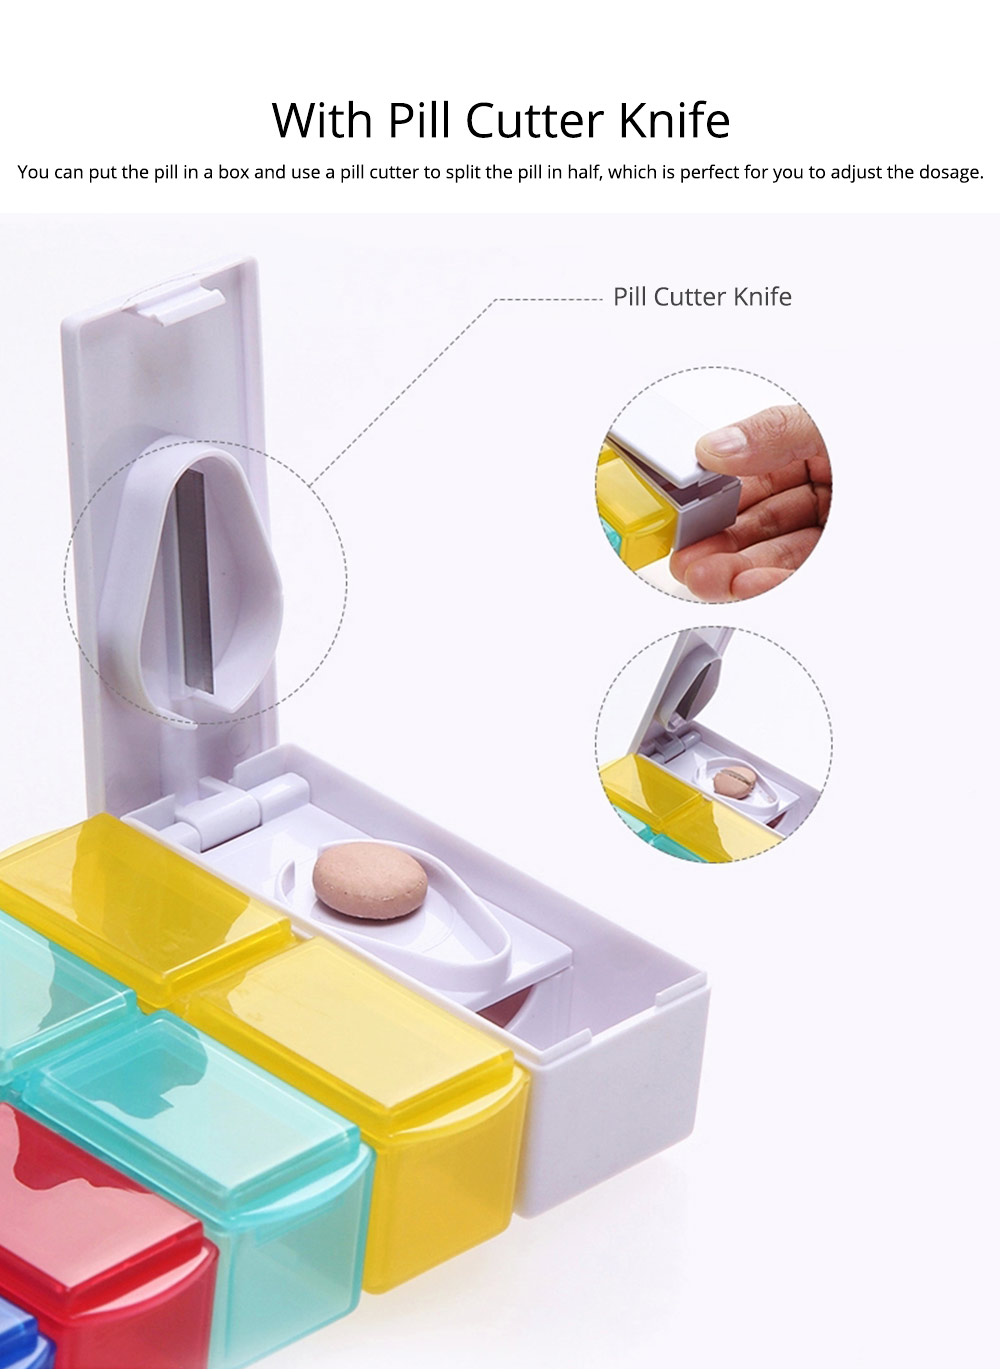 7 Day Detachable Pill Organizer with Pill Cutter, Travel Portable Weekly Medicine Dispenser 5